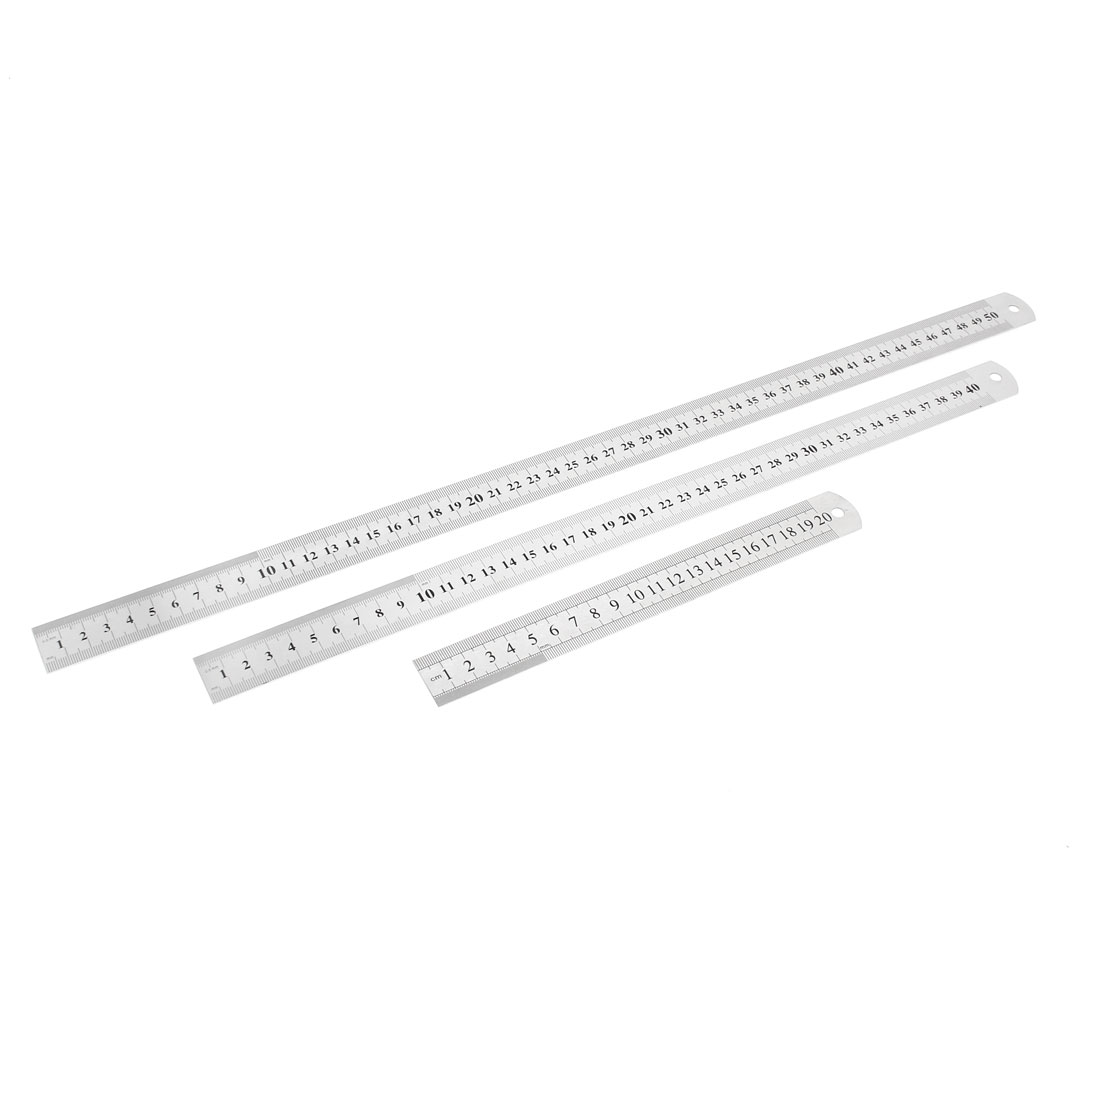 3 in 1 20cm 40cm 50cm Double Sides Students Metric Straight Ruler Silver Tone